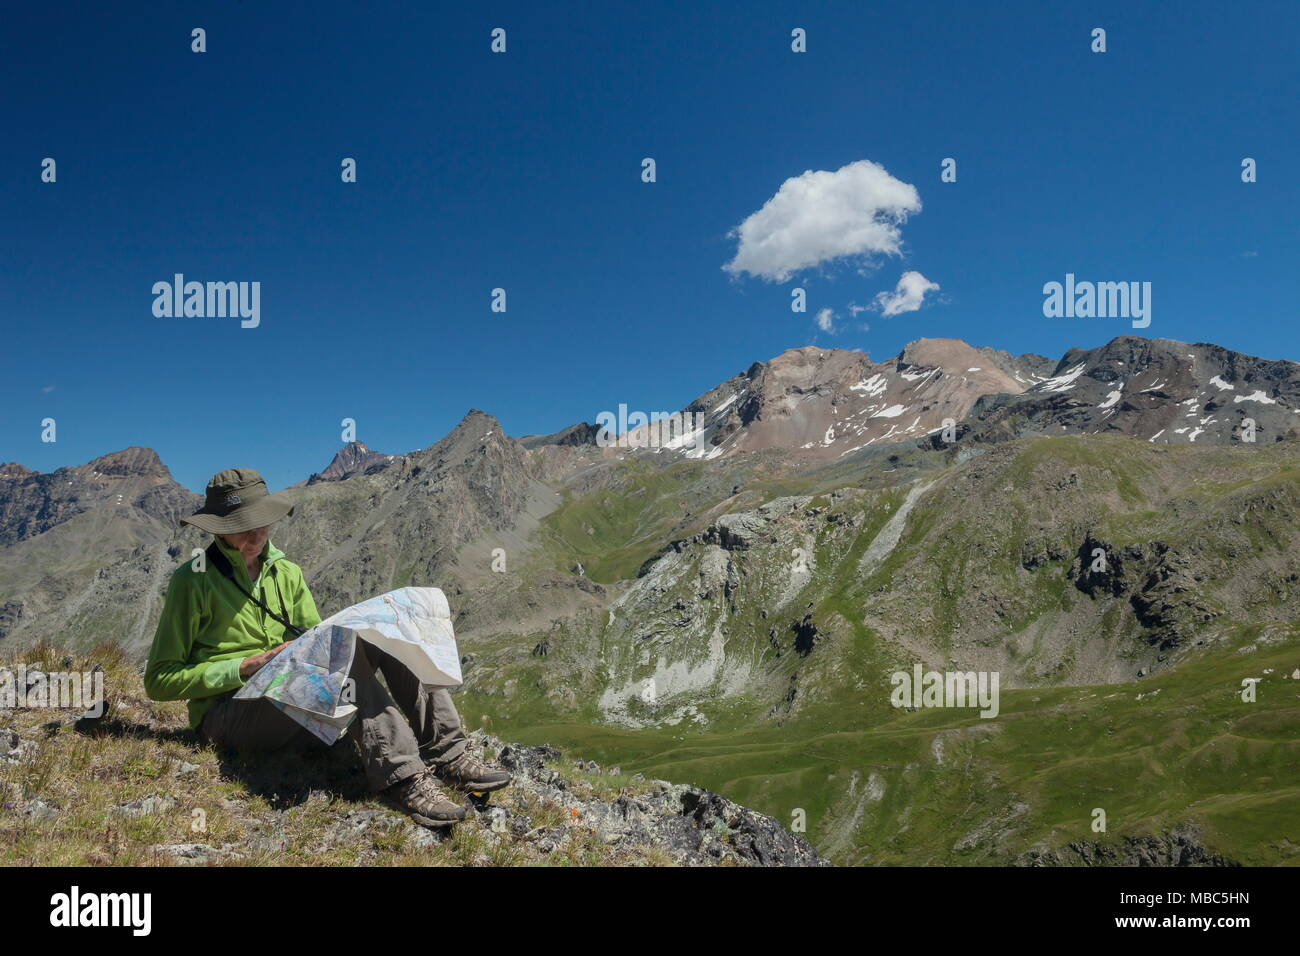 Map Of Italy With Mountains.Hiker Checking The Map Durig A Rest In The Mountains Rhemes Valley